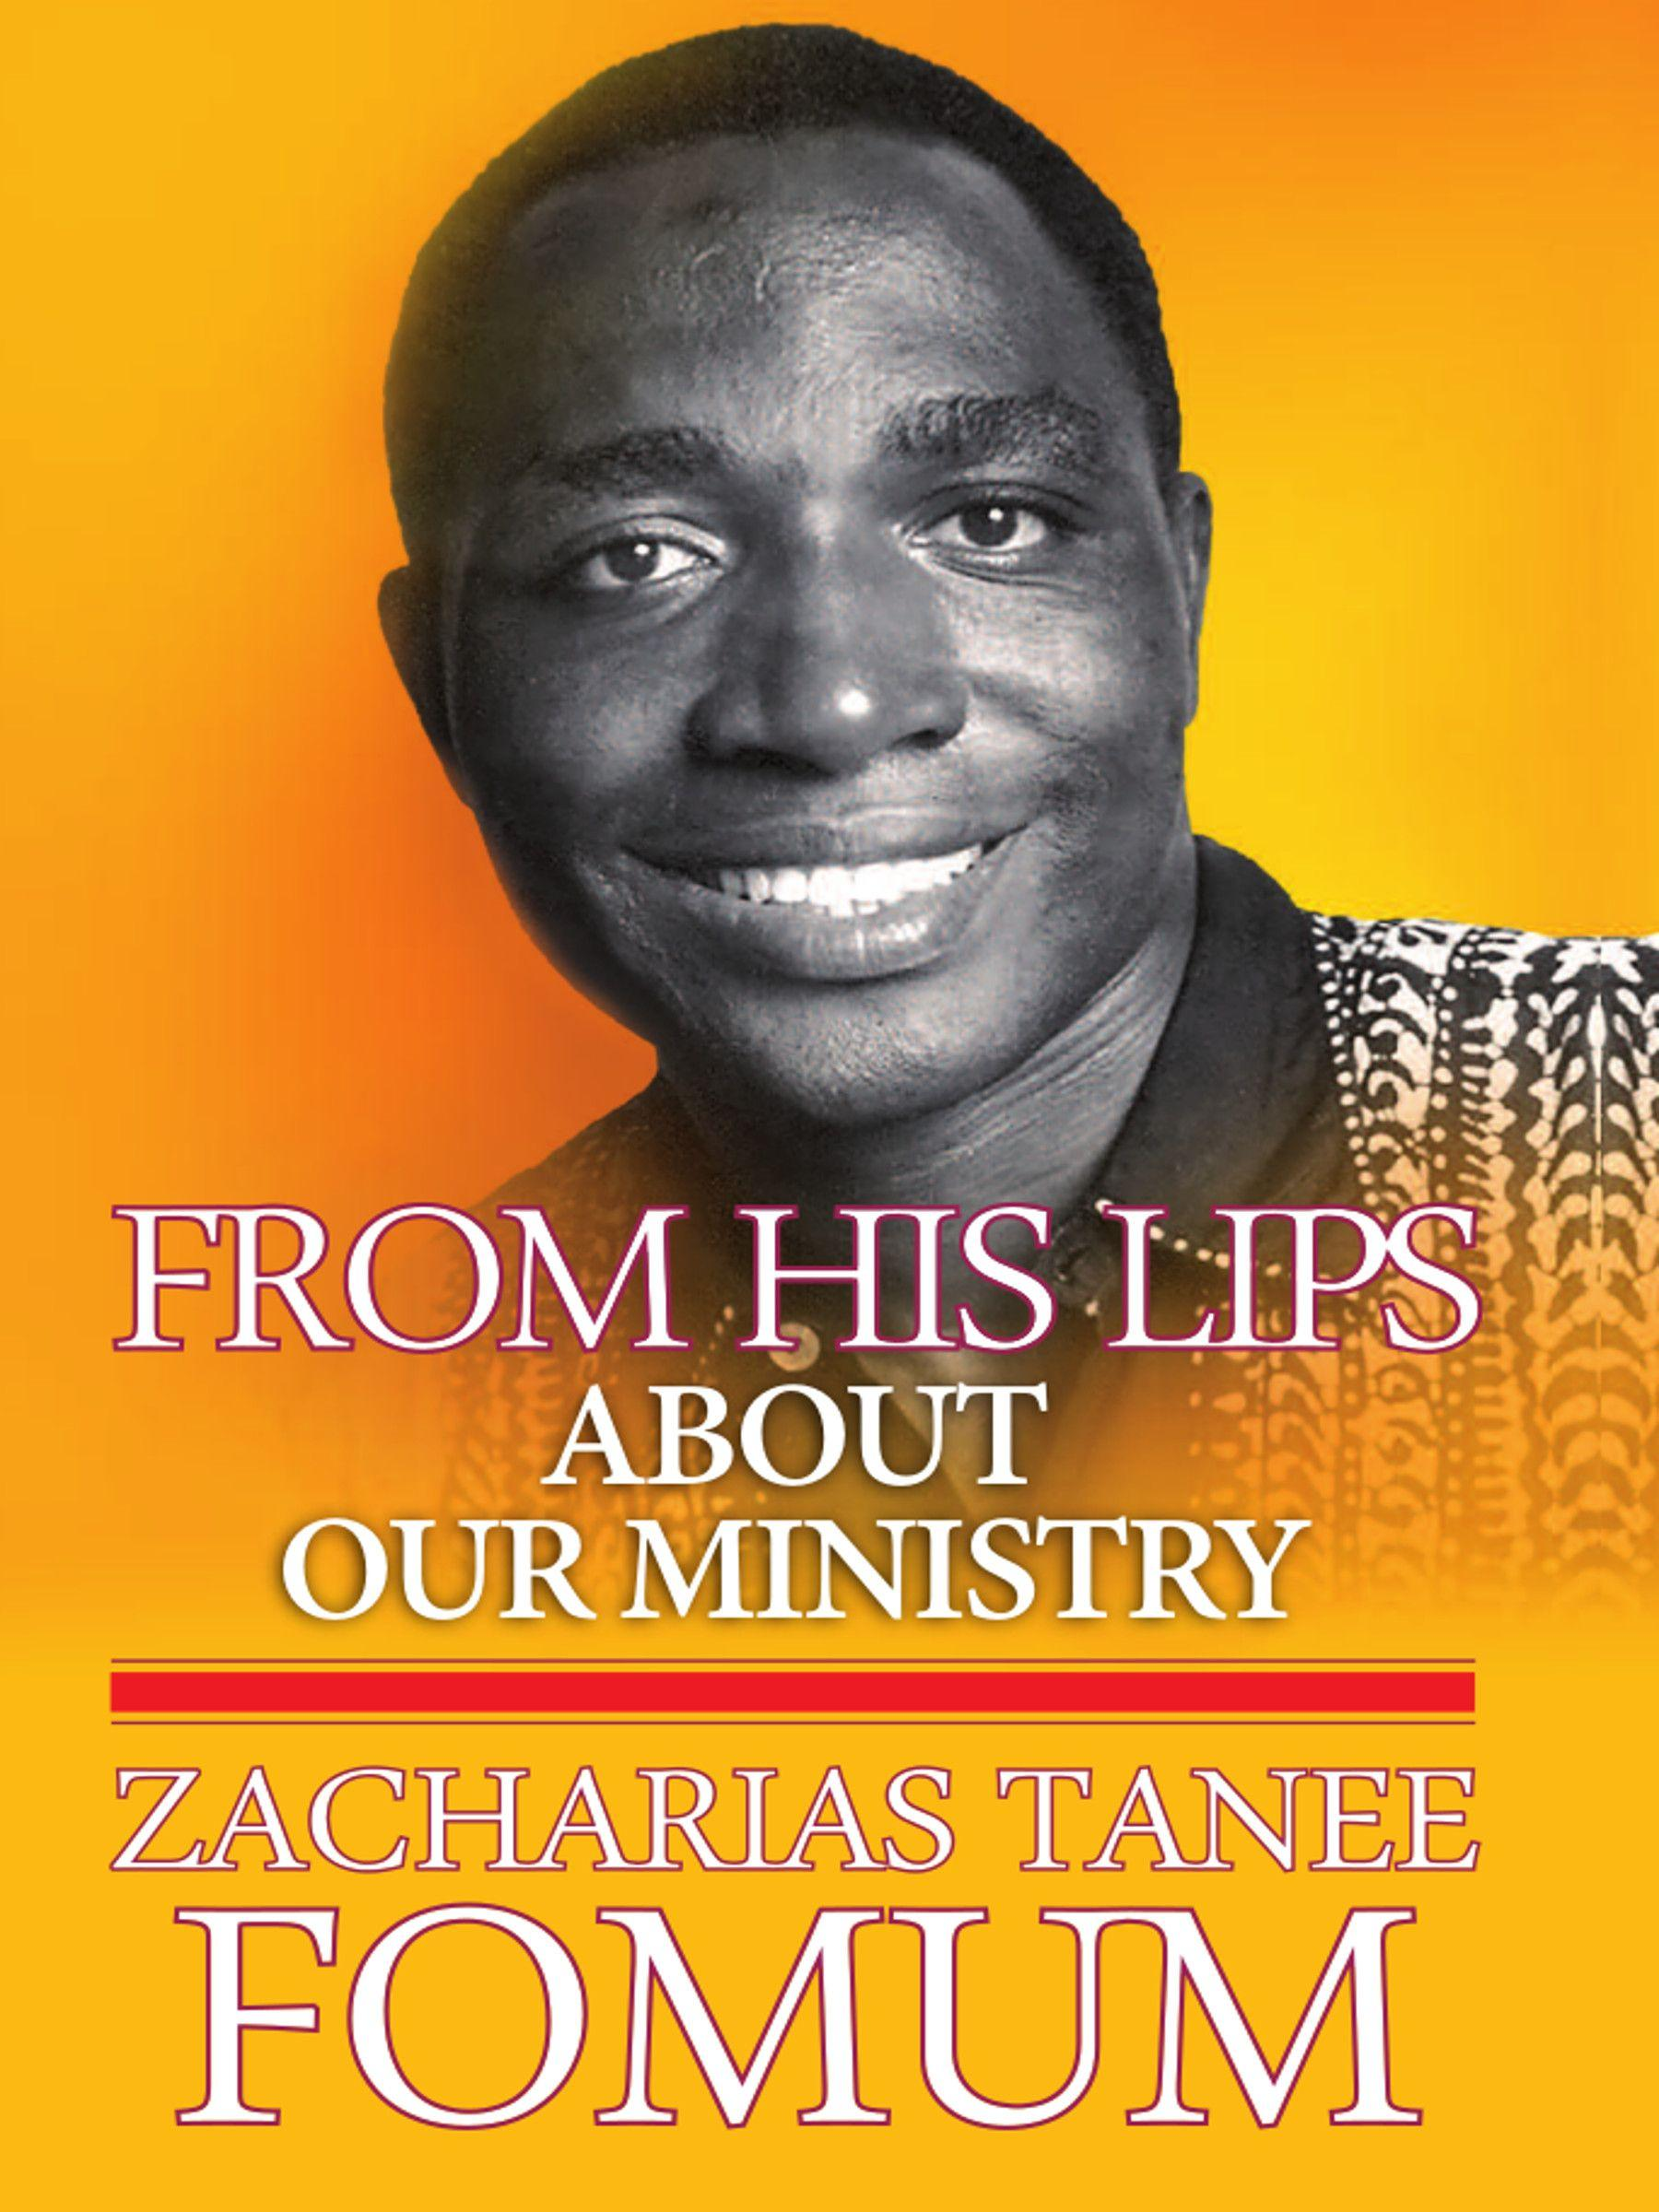 From His Lips: About Our Ministry